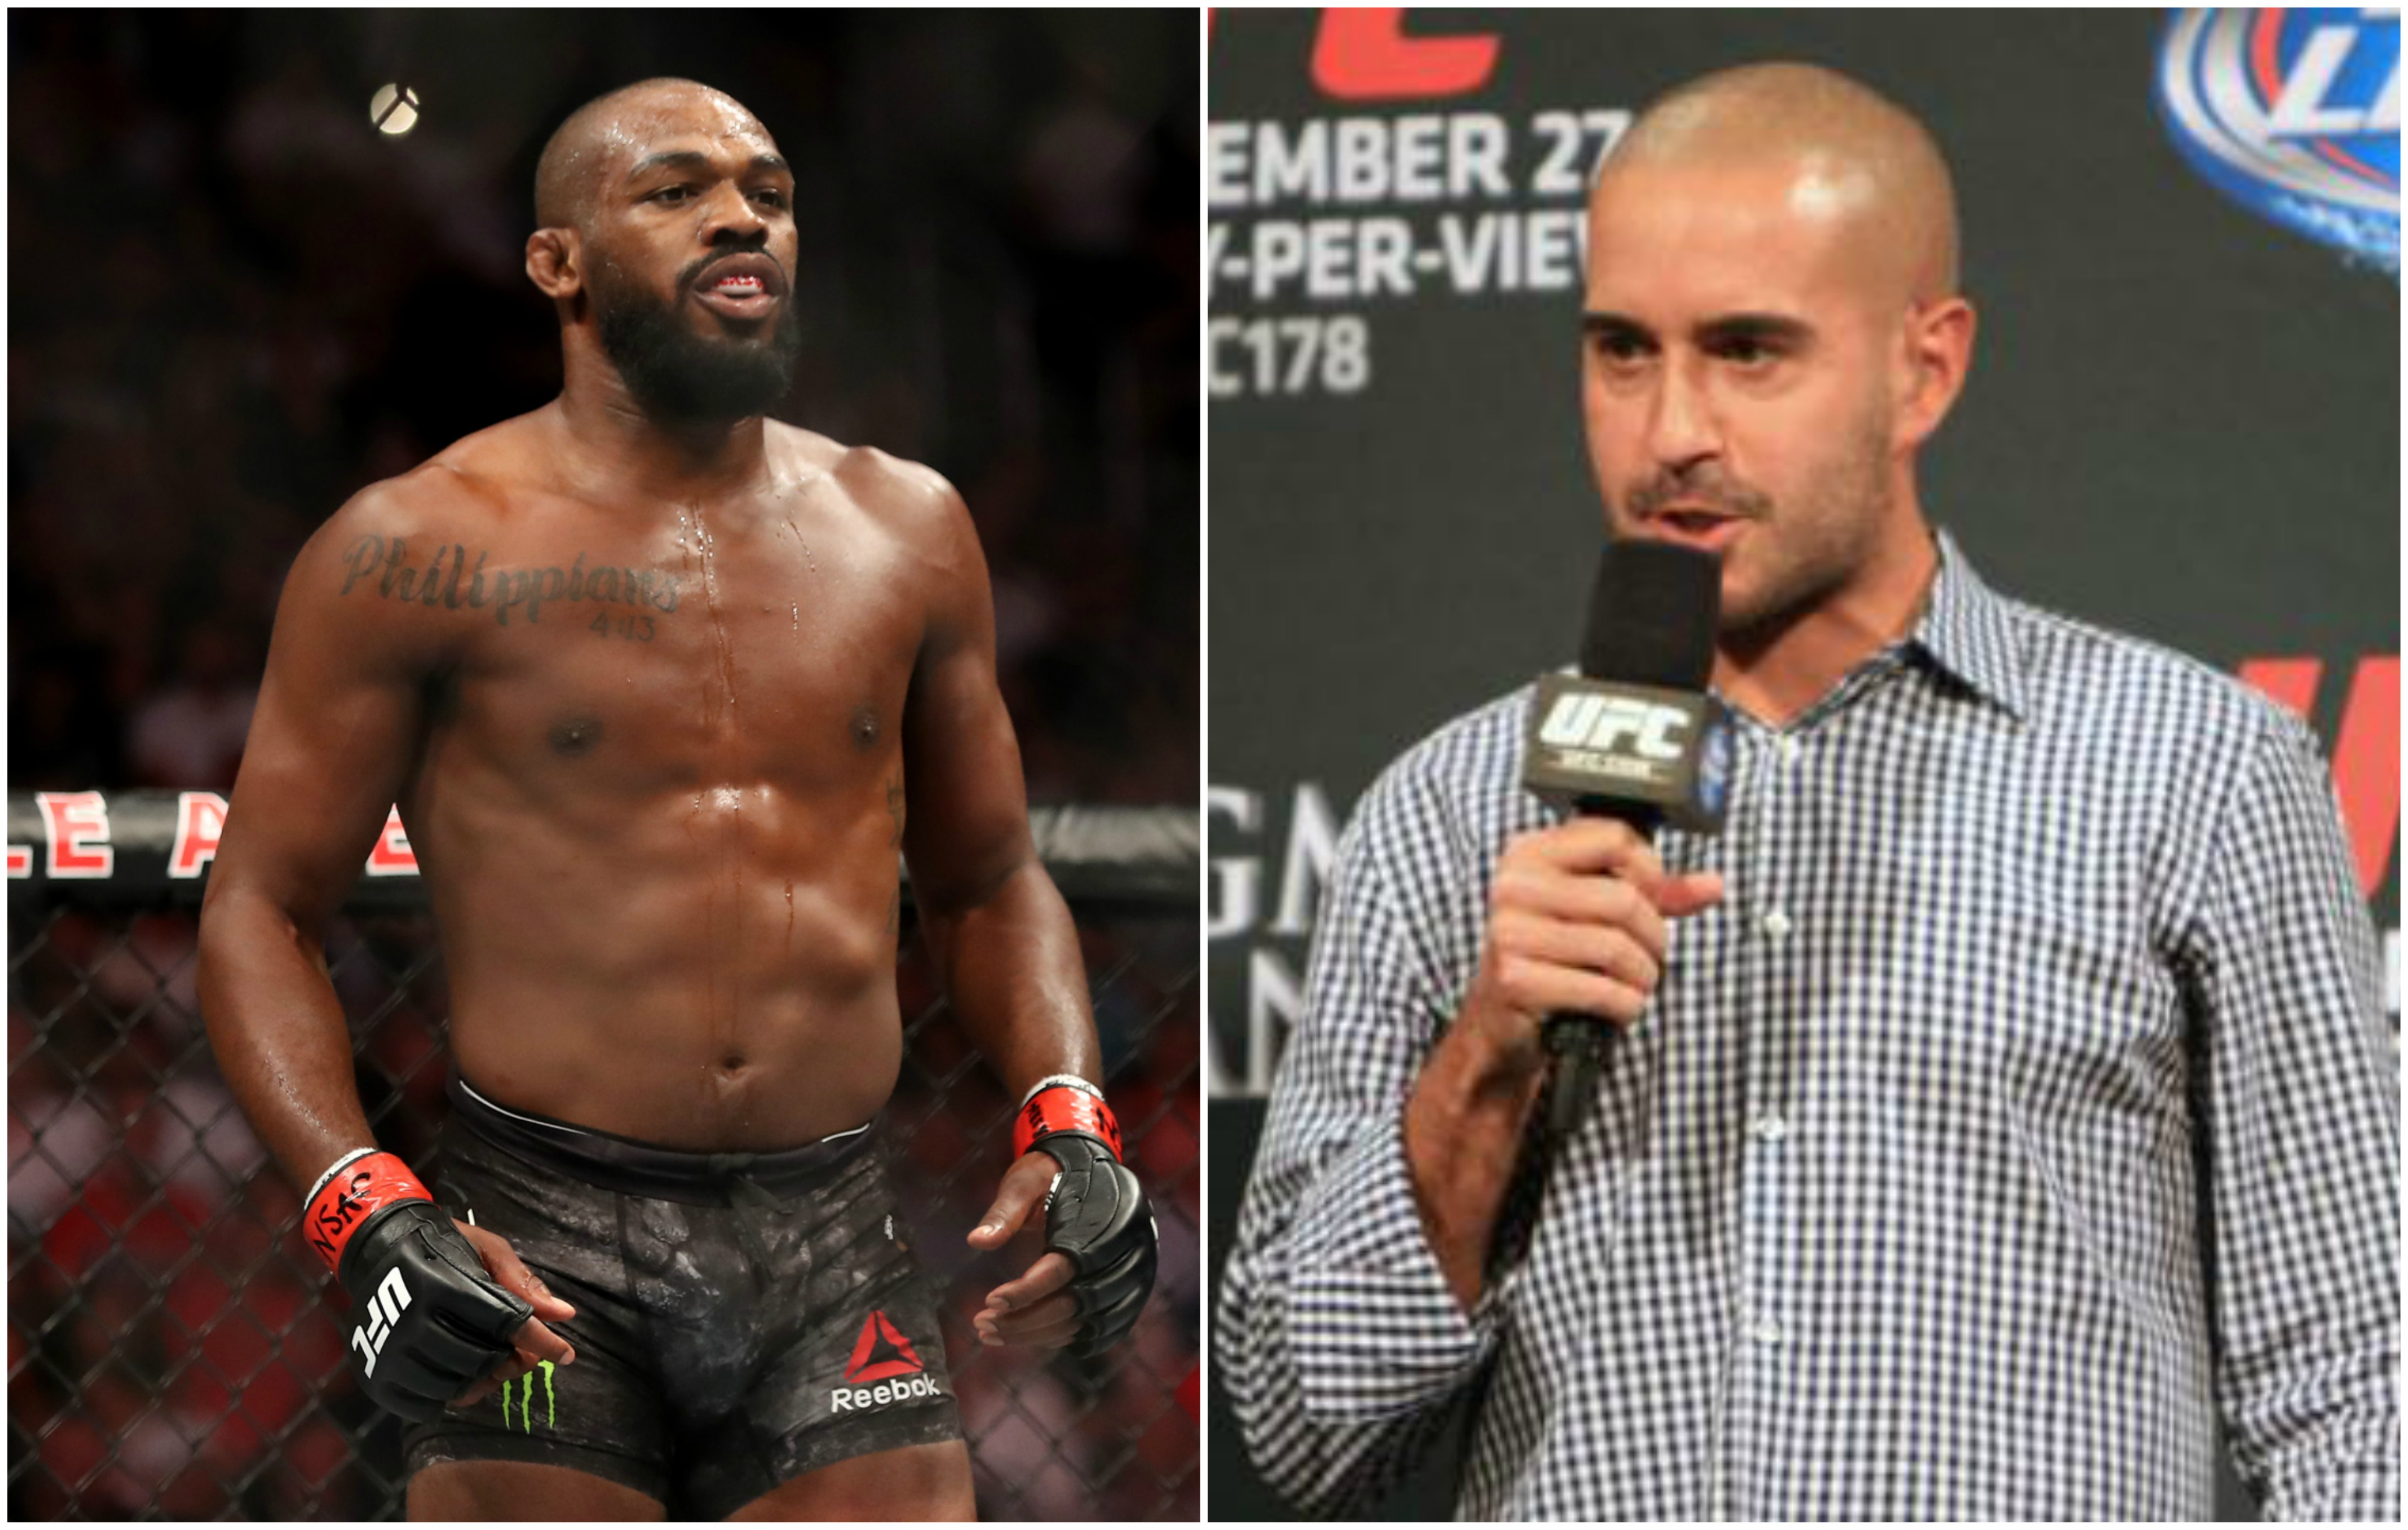 UFC News: Jon Anik on Jon Jones' arrest: 'His daughters must be embarrassed' - Jon Anik